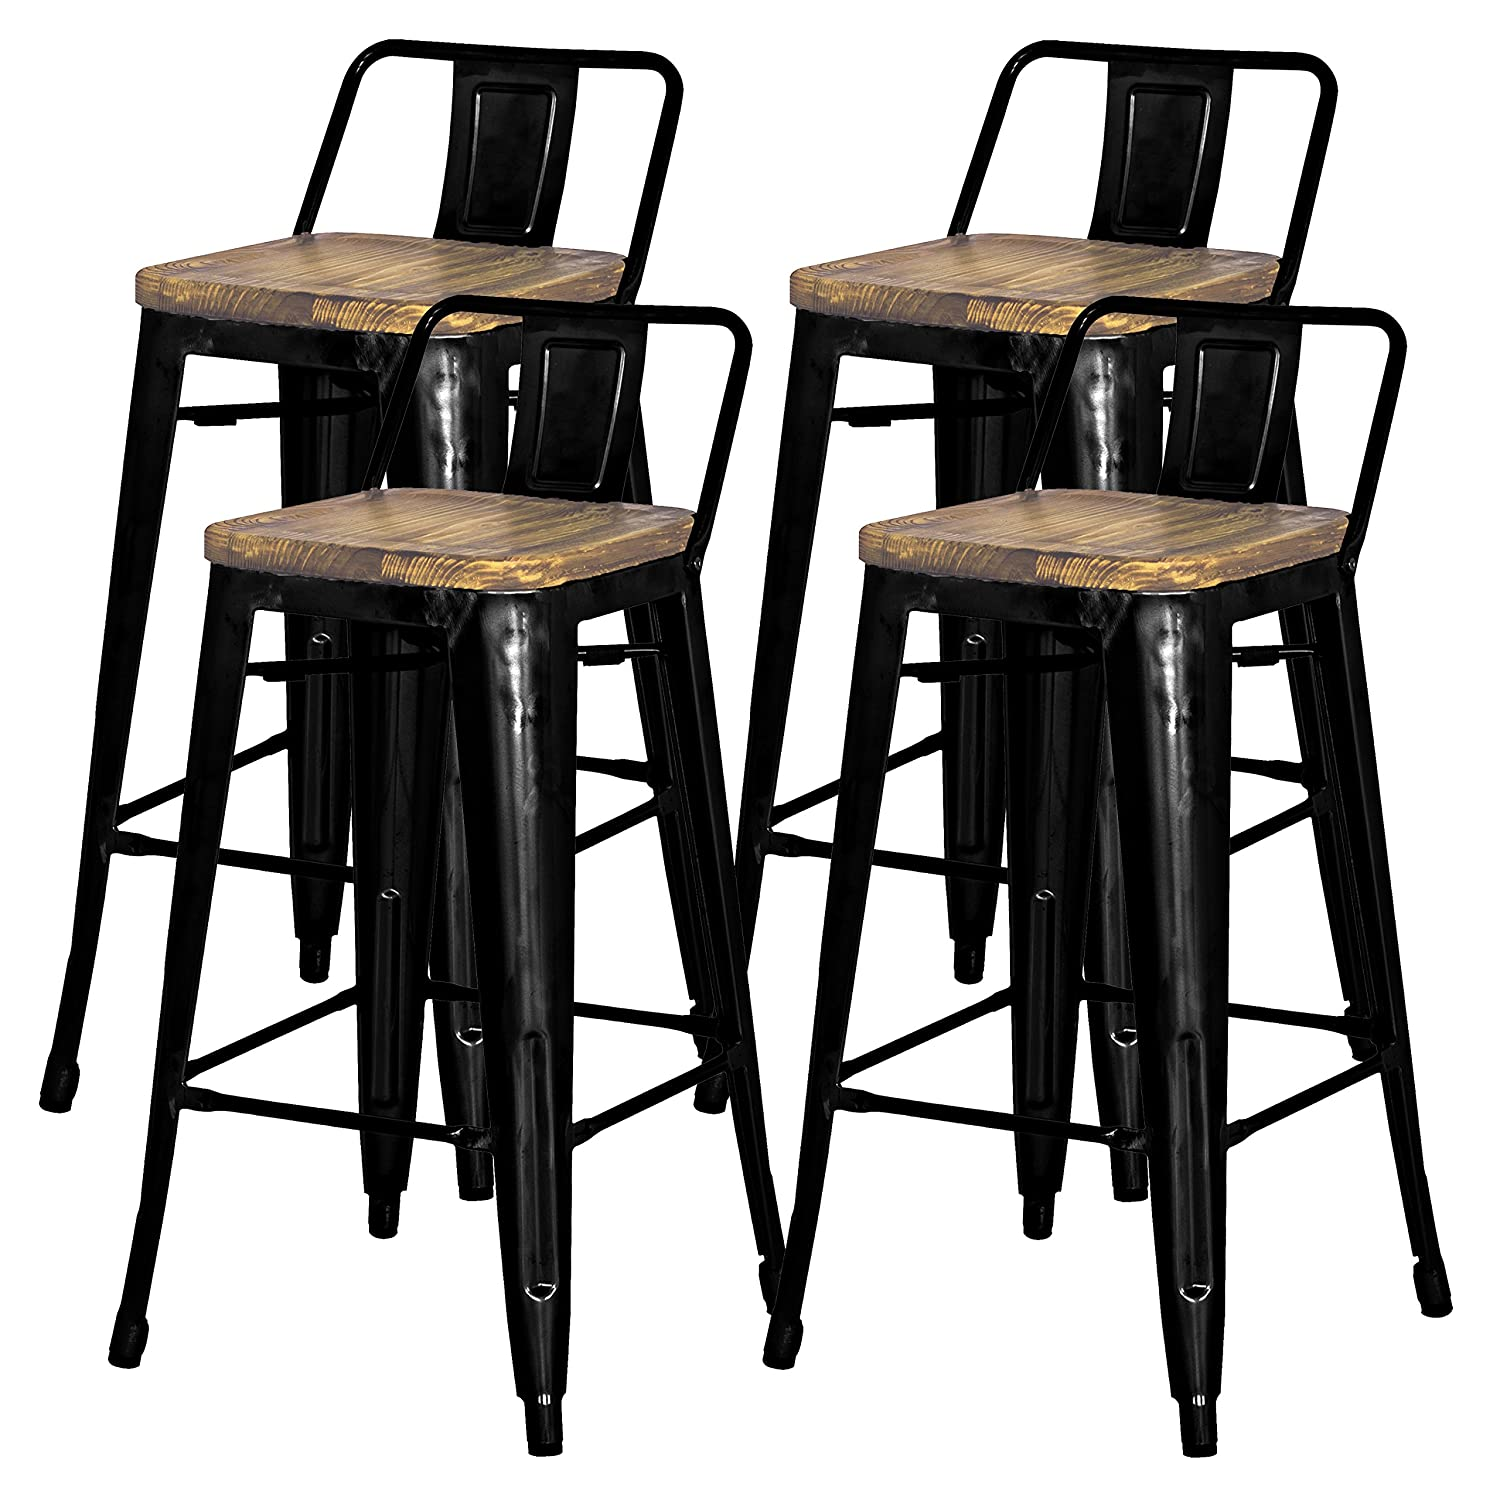 Swell New Pacific Direct Metropolis Metal Low Back Bar Stool 30 Wood Seat Indoor Outdoor Ready Black Set Of 4 Gmtry Best Dining Table And Chair Ideas Images Gmtryco